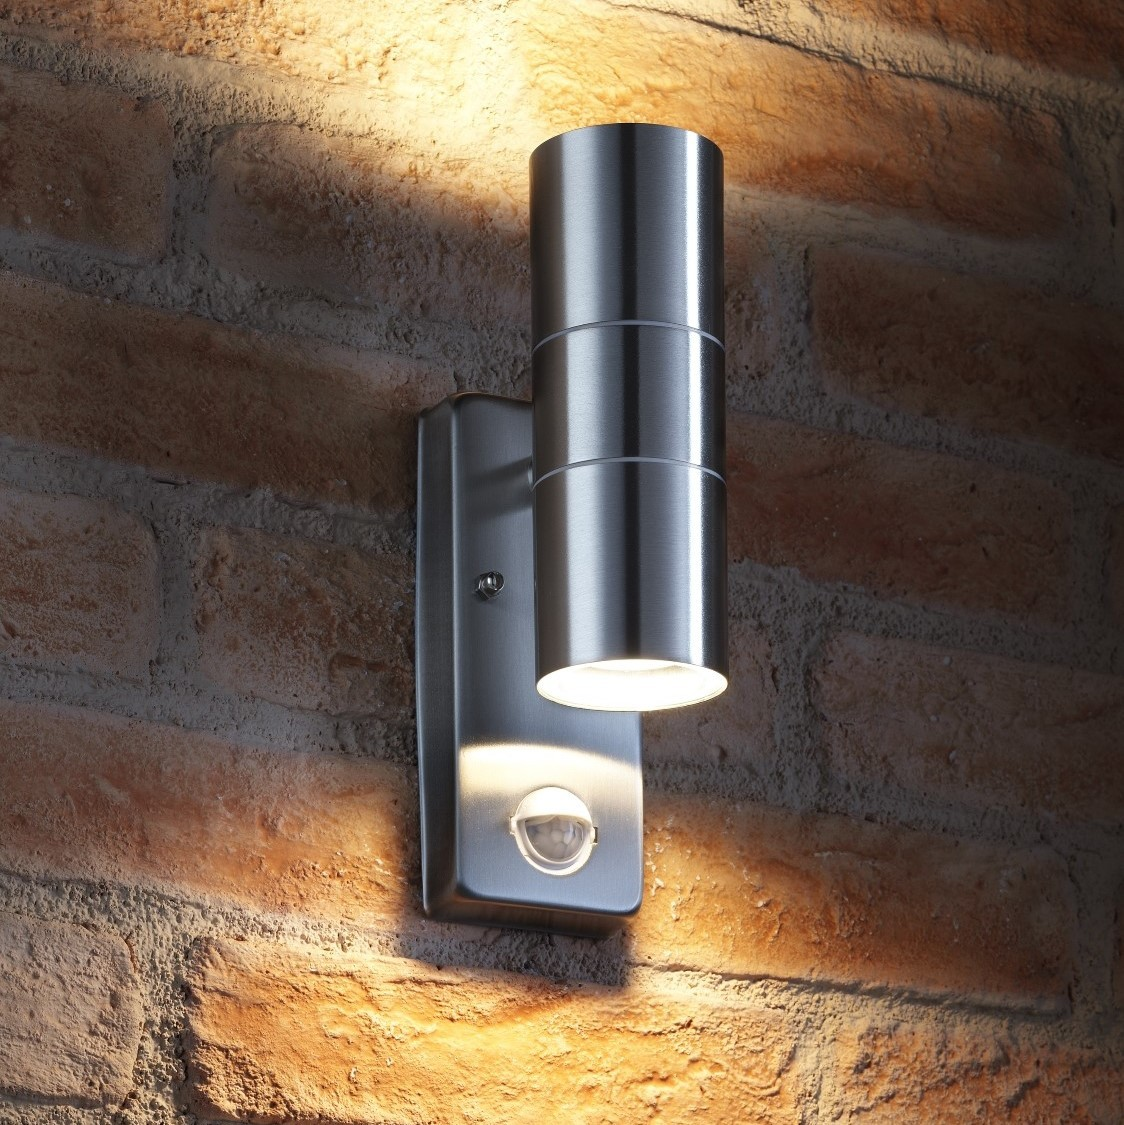 Auraglow PIR Motion Sensor Up   Down Outdoor Wall Security Light -  WARMINSTER - Stainless Steel - Auraglow LED Lighting a72b272869da